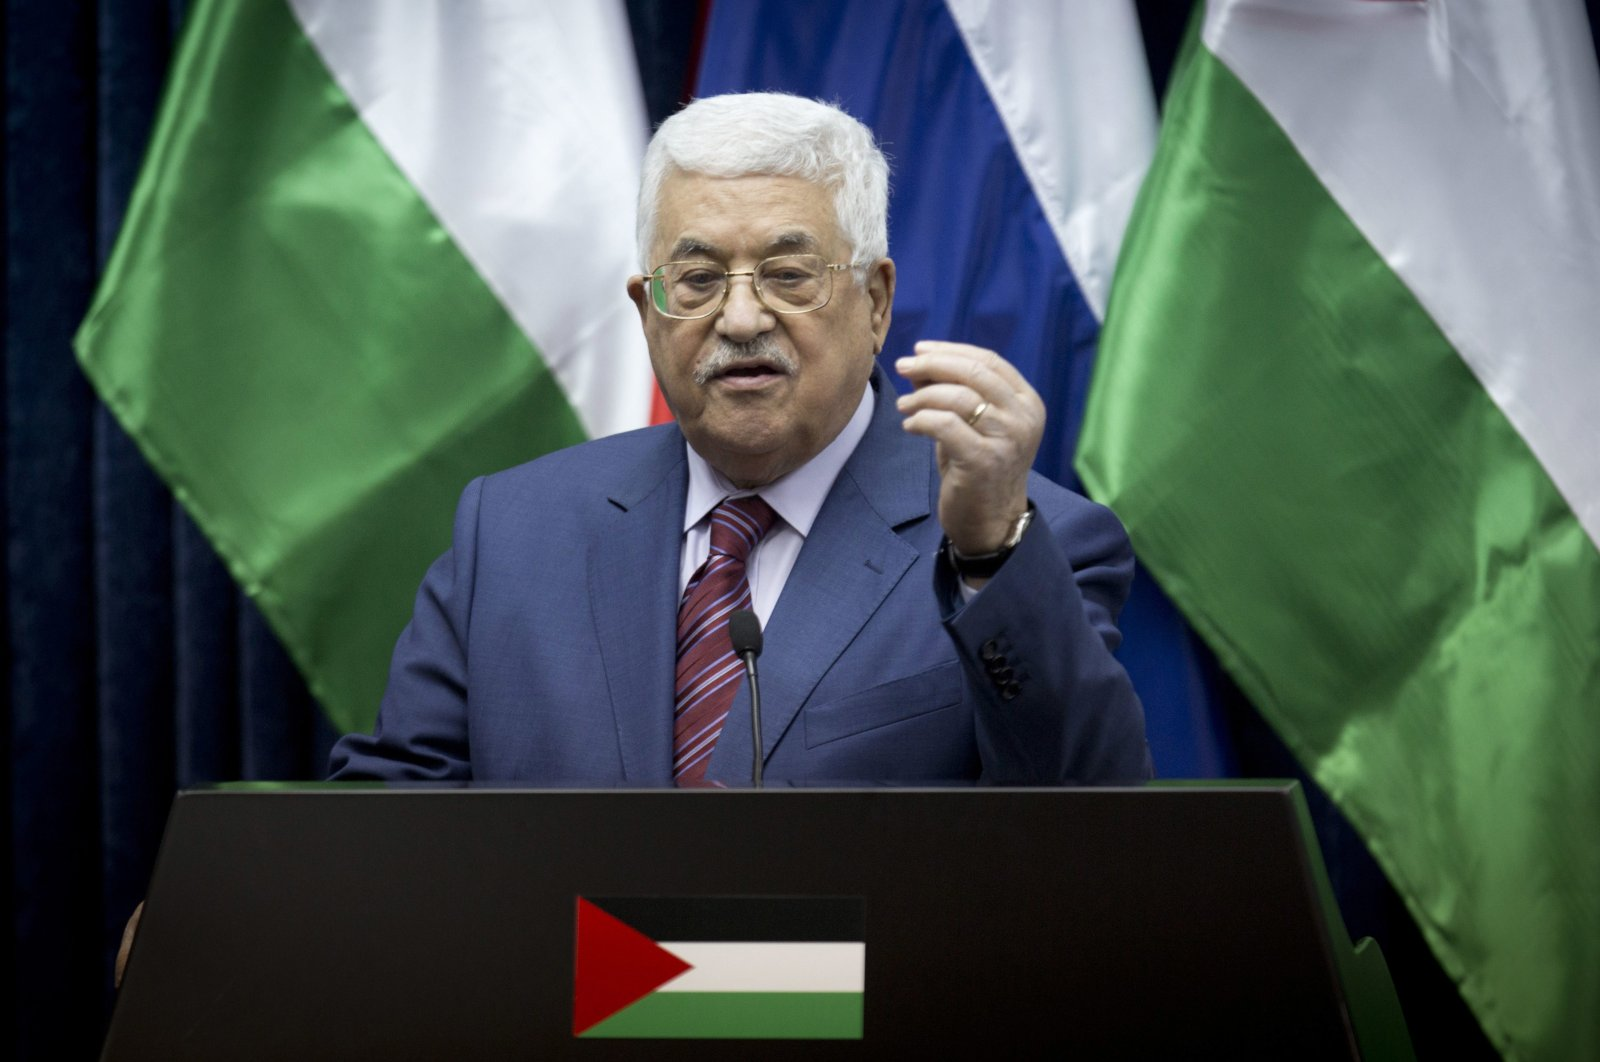 Palestinian President Mahmoud Abbas speaks during a press conference with Russian Prime Minister Dmitry Medvedev following a meeting in the West Bank city of Jericho, Nov. 11, 2016. (AP Photo)